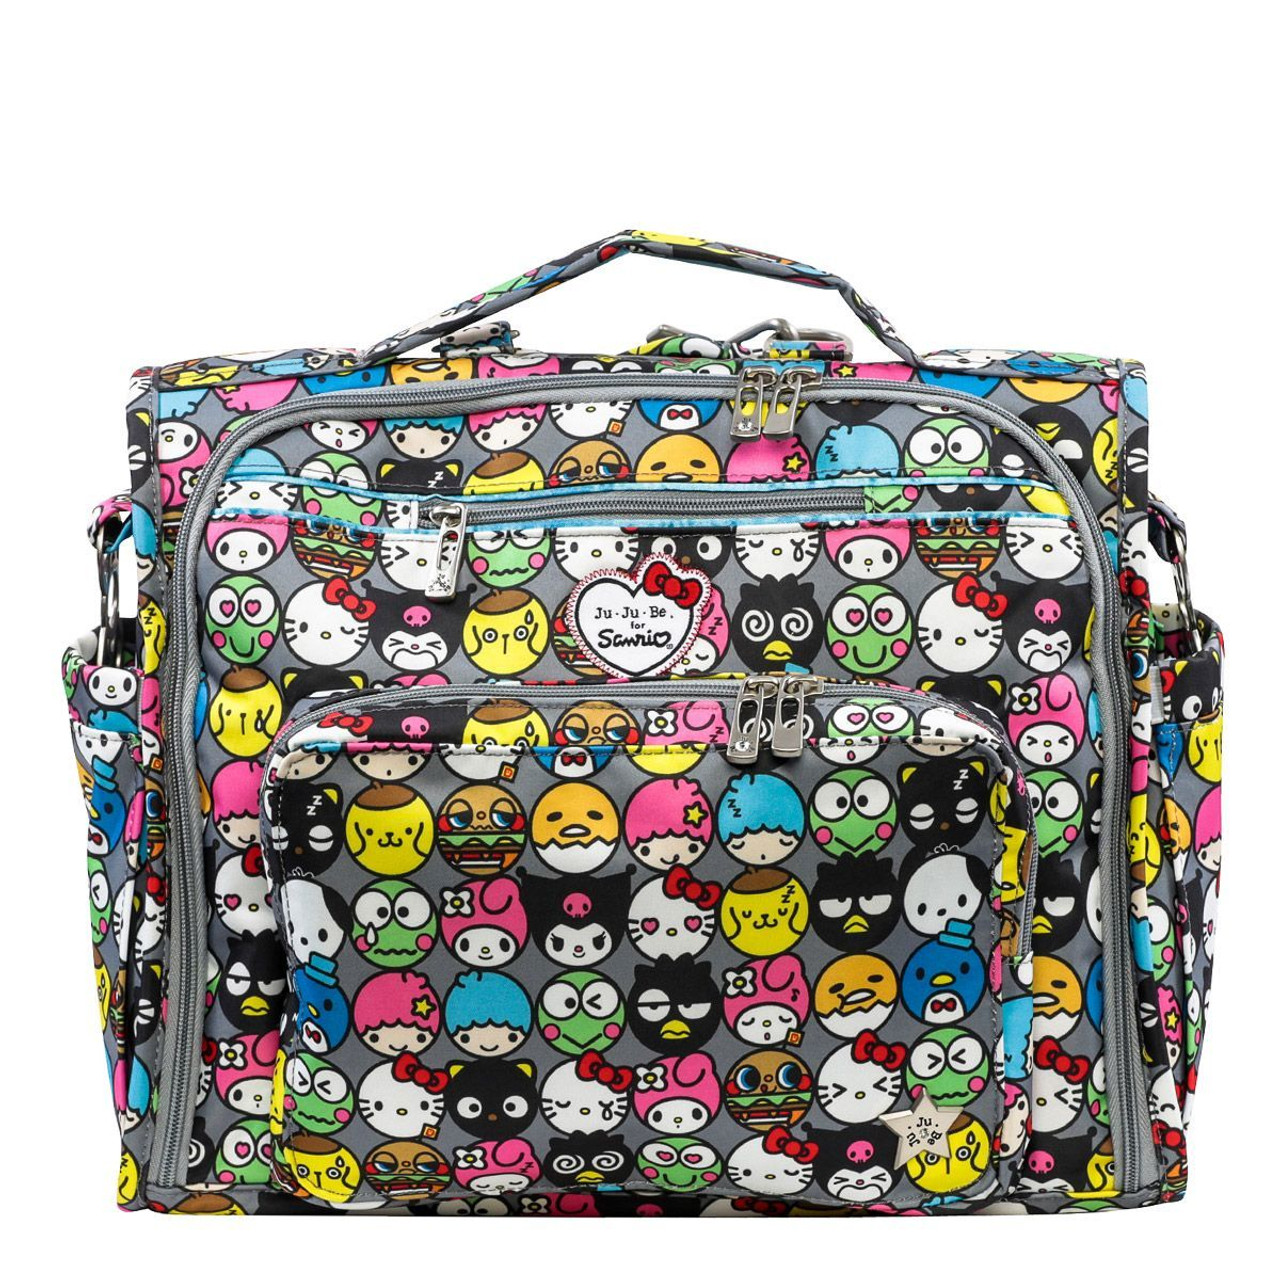 f767779437e Ju-Ju-Be Sanrio Hello Kitty B.F.F Diaper Bag Purse Baby Bag 14FM02HK-HFR -  Fearless Apparel